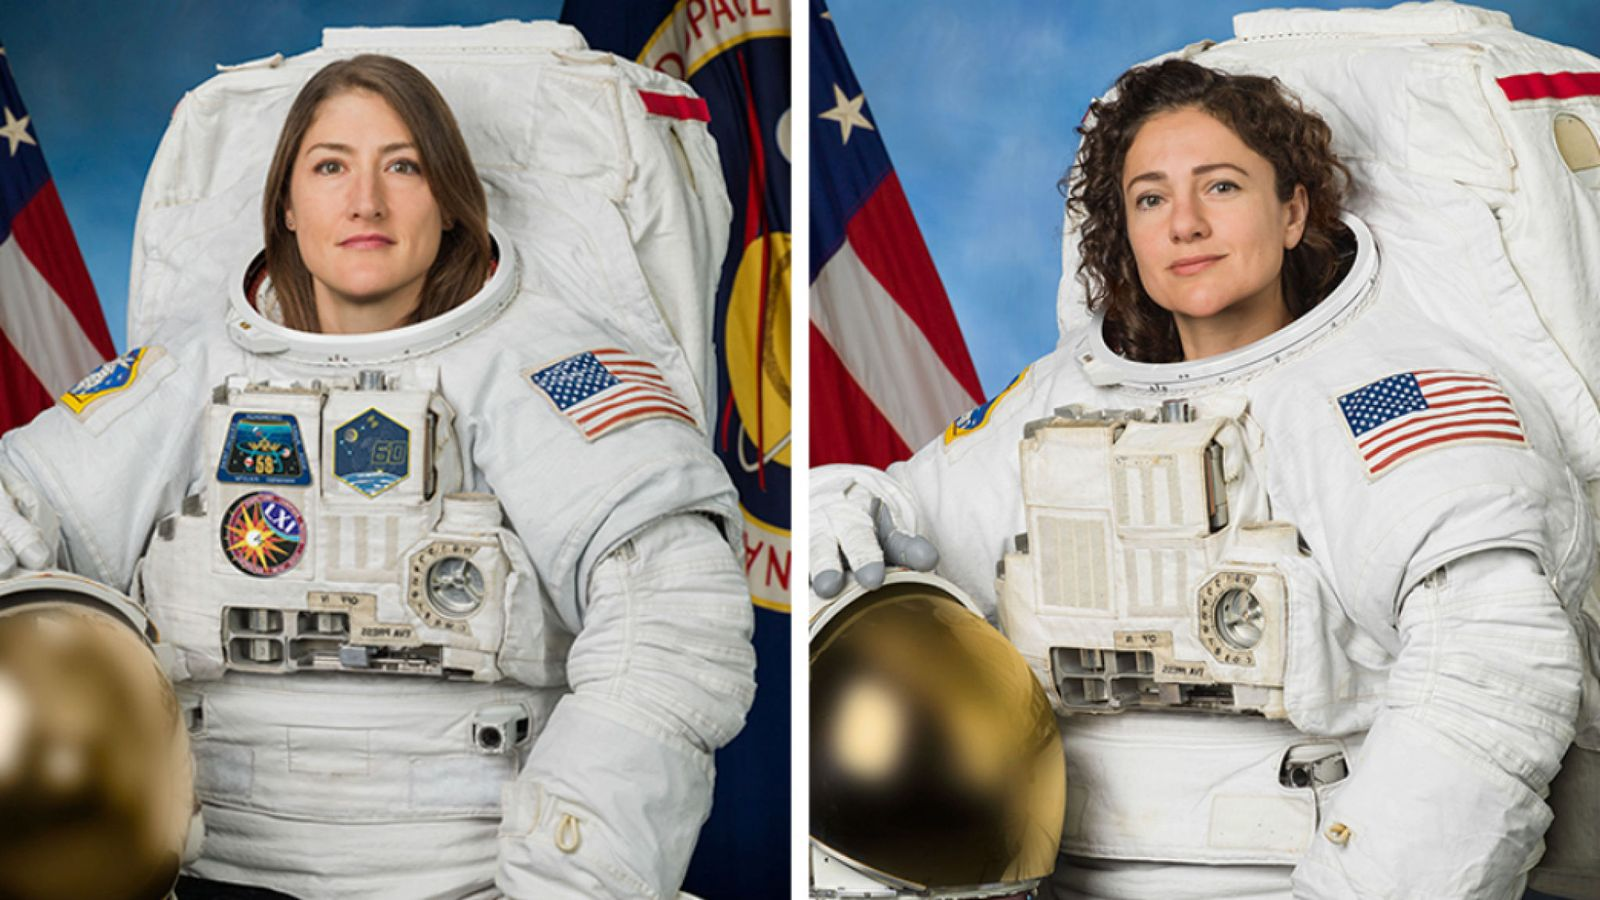 Two American females start their first-ever female spacewalk to repair ISS